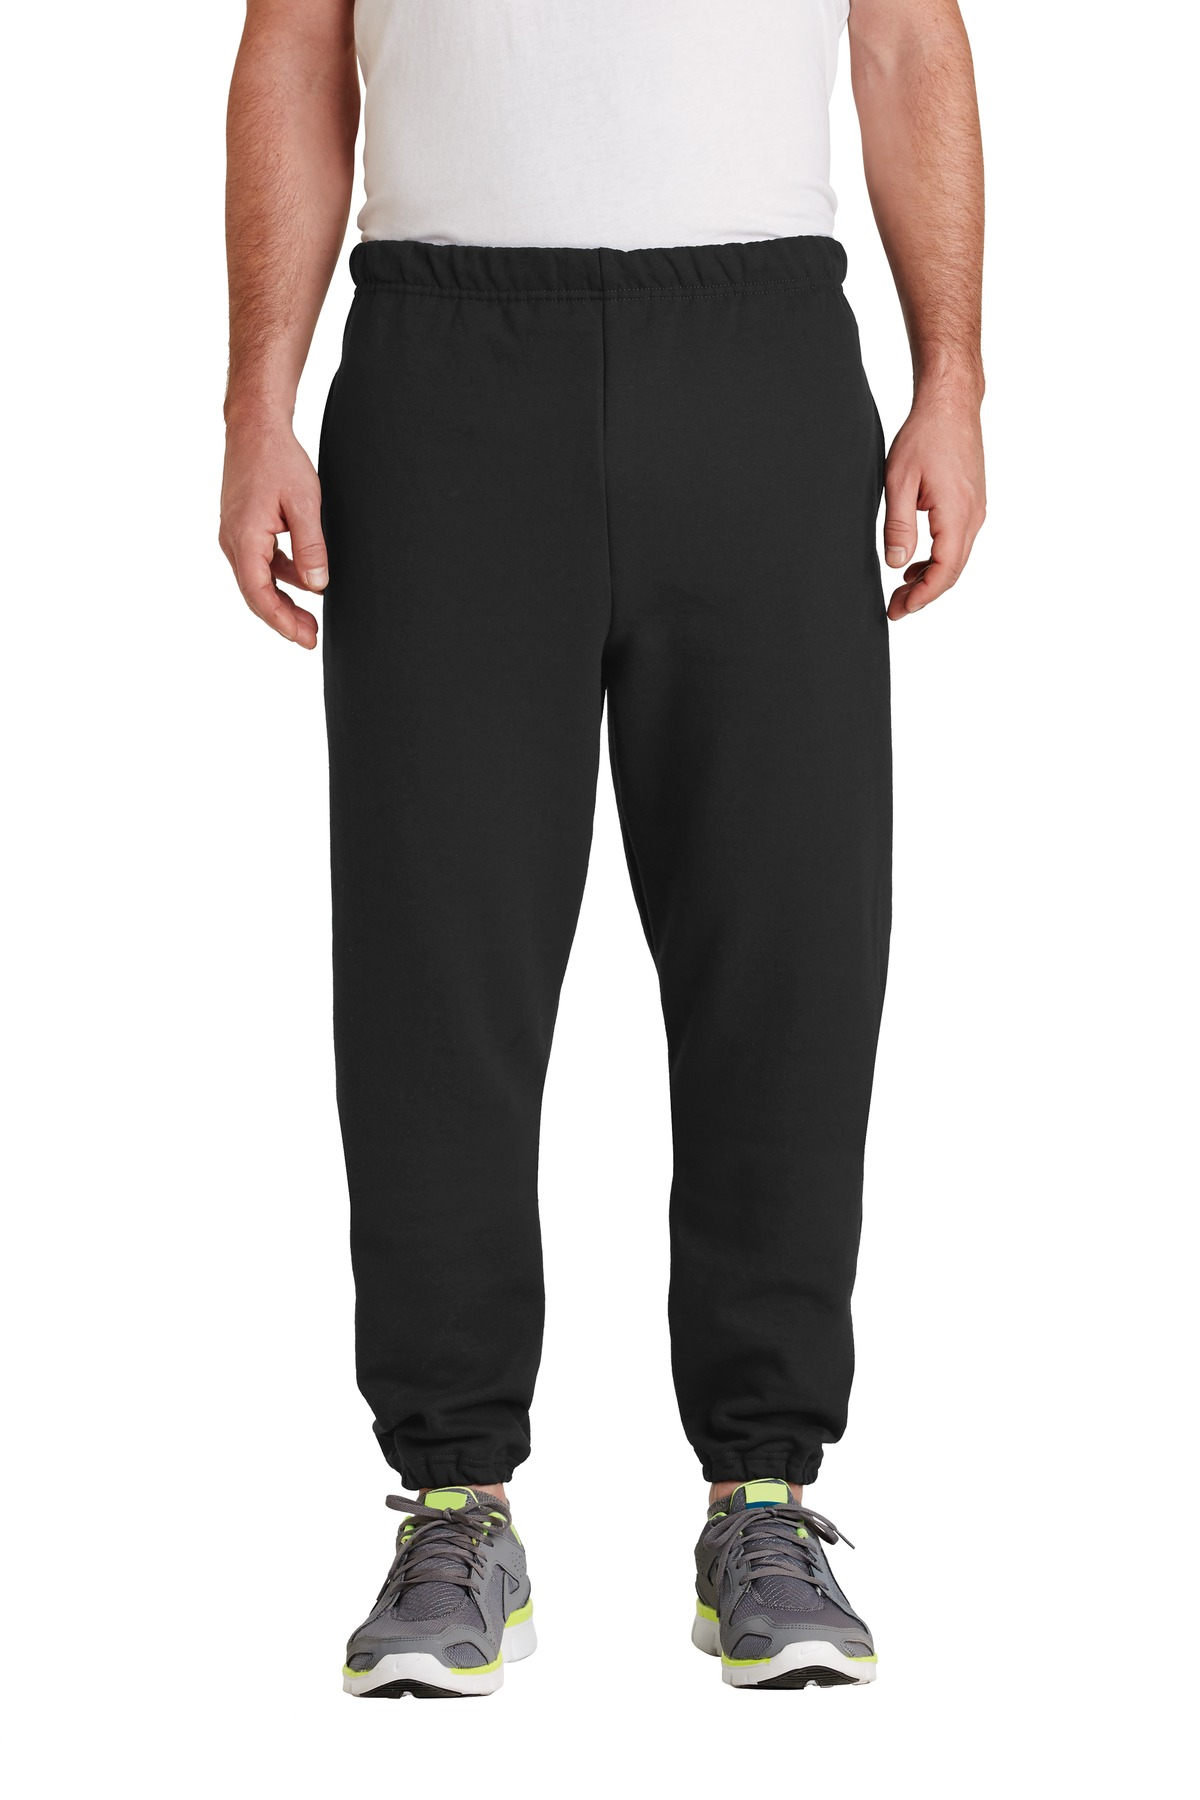 JERZEES ®  SUPER SWEATS ®  NuBlend ®  - Sweatpant with Pockets.  4850MP - Black